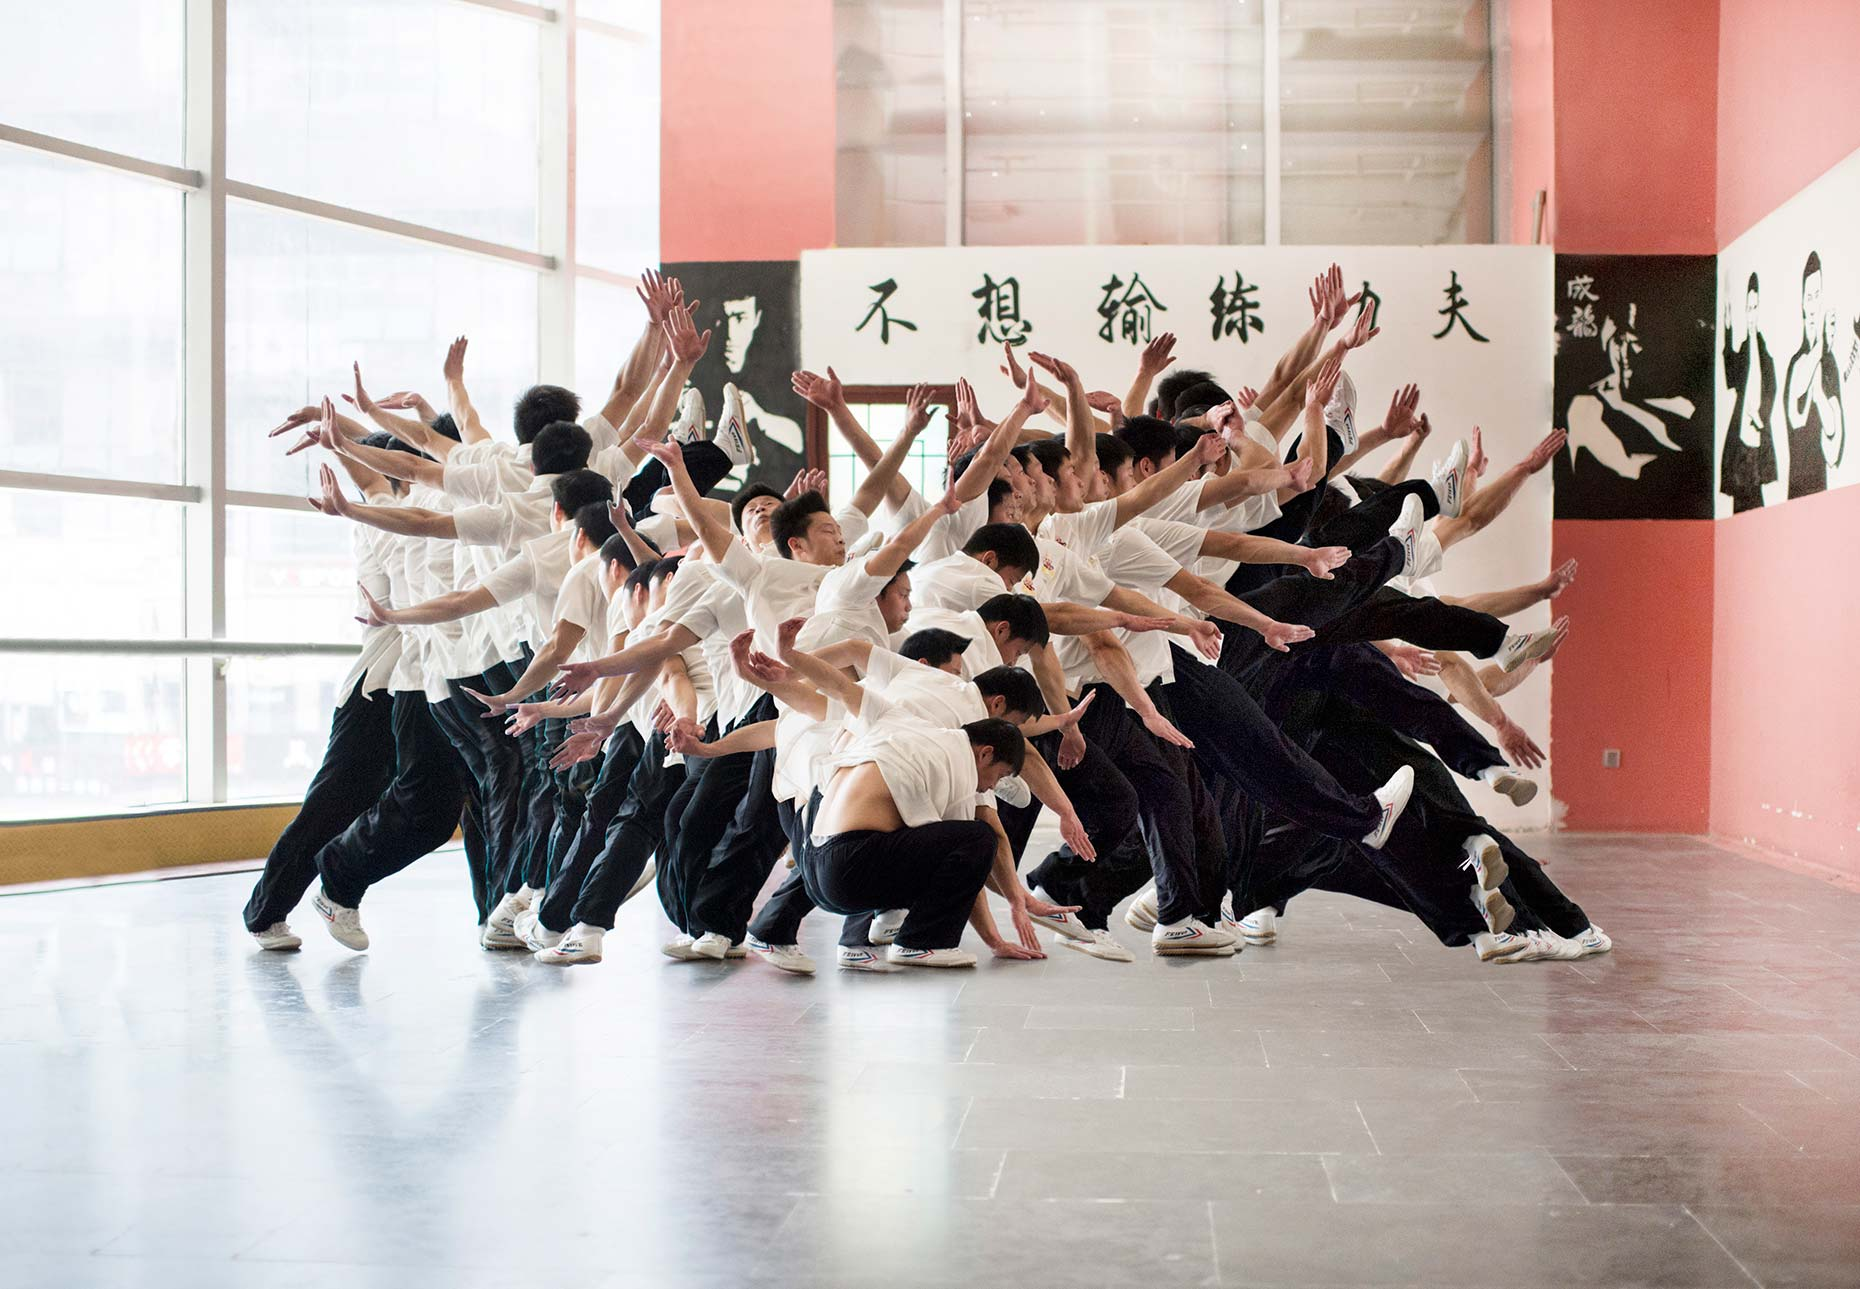 Nikon D5 Sports Campaign by Photographer Stefen Chow | Commercial Photography | Sports Photography | Multiple Exposure | art | Wushu | Martial Art | Beijing | China | Asia